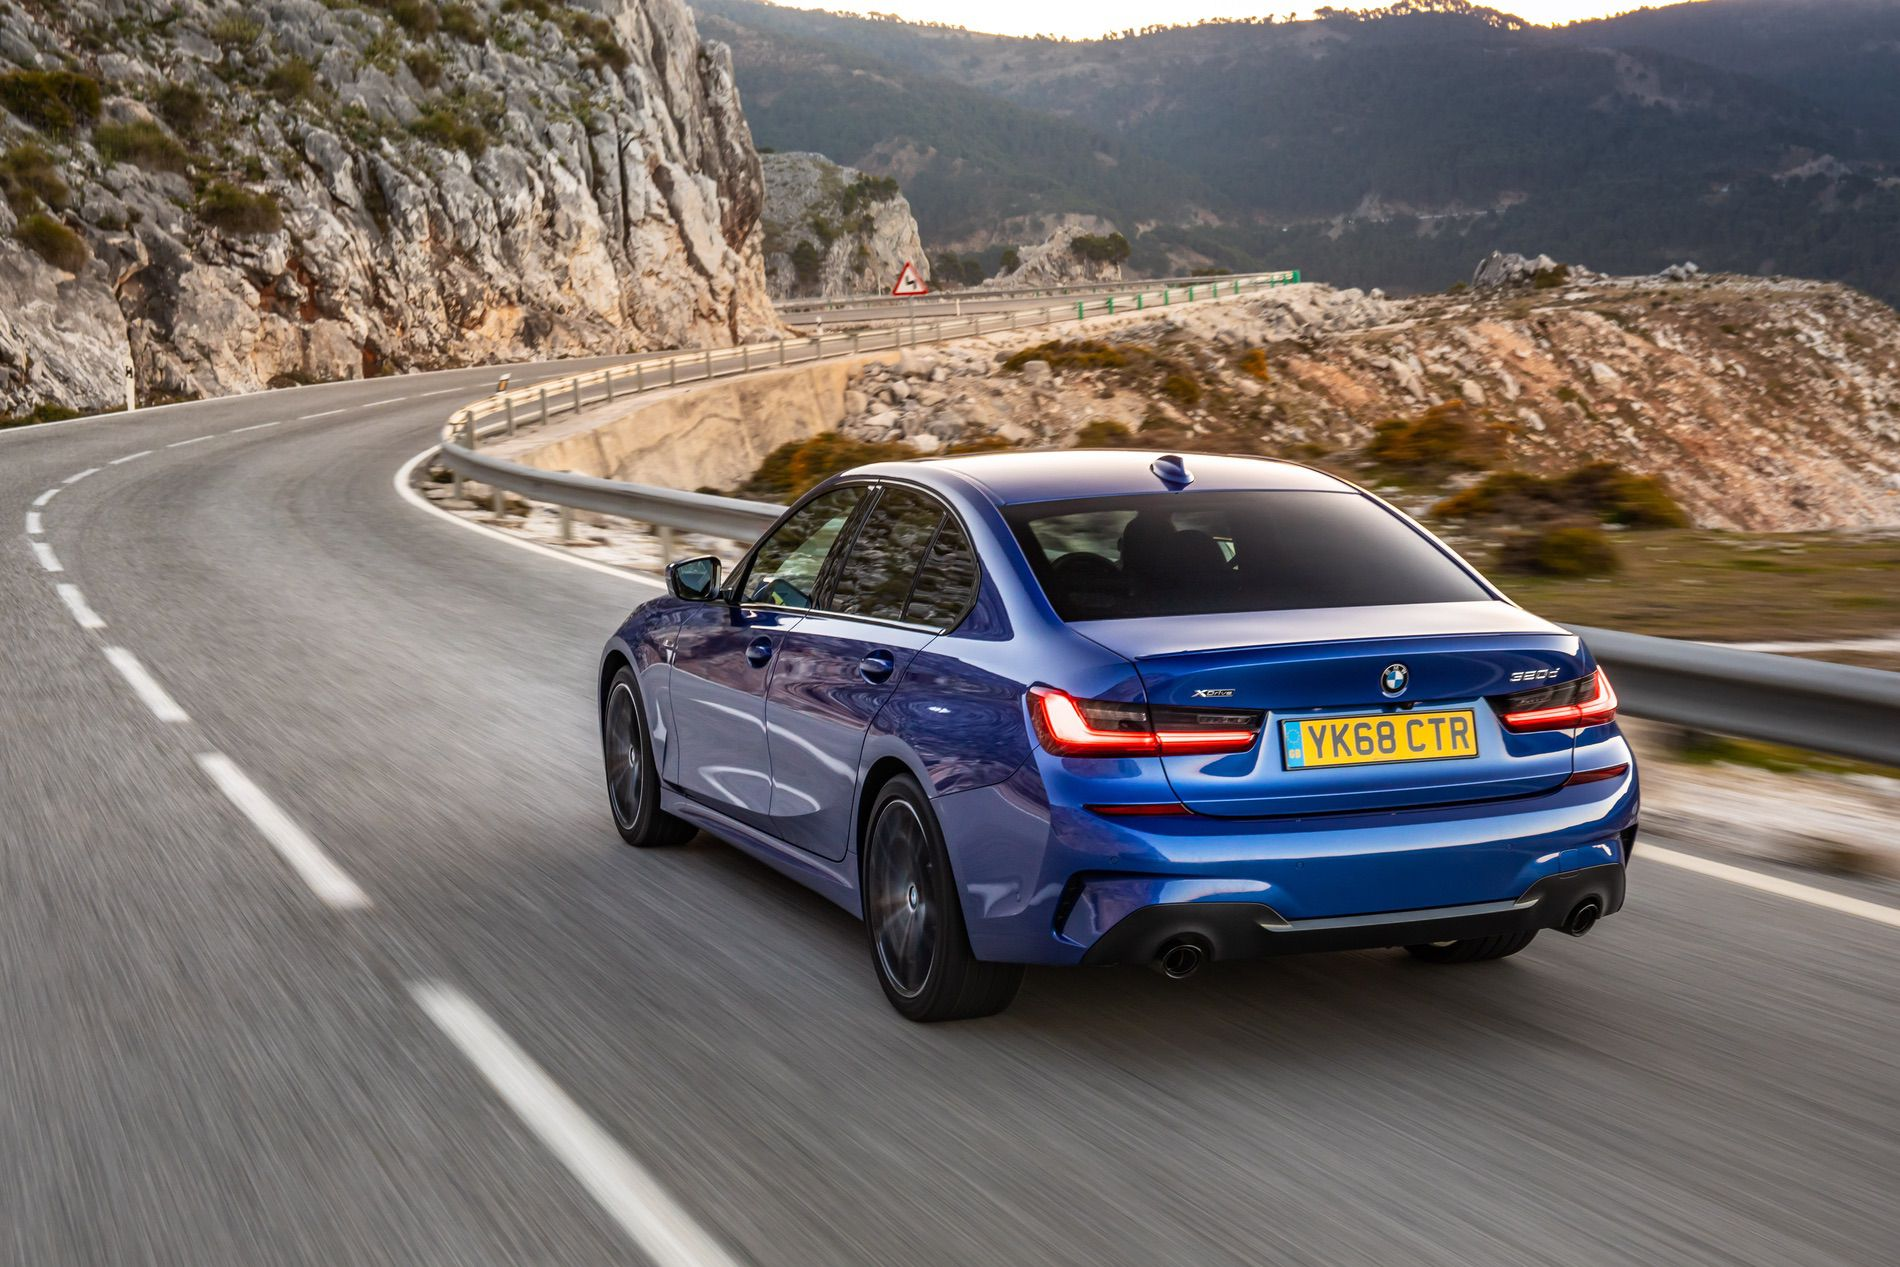 2019 Bmw 320d Shown In Portimao Blue During A Photoshoot